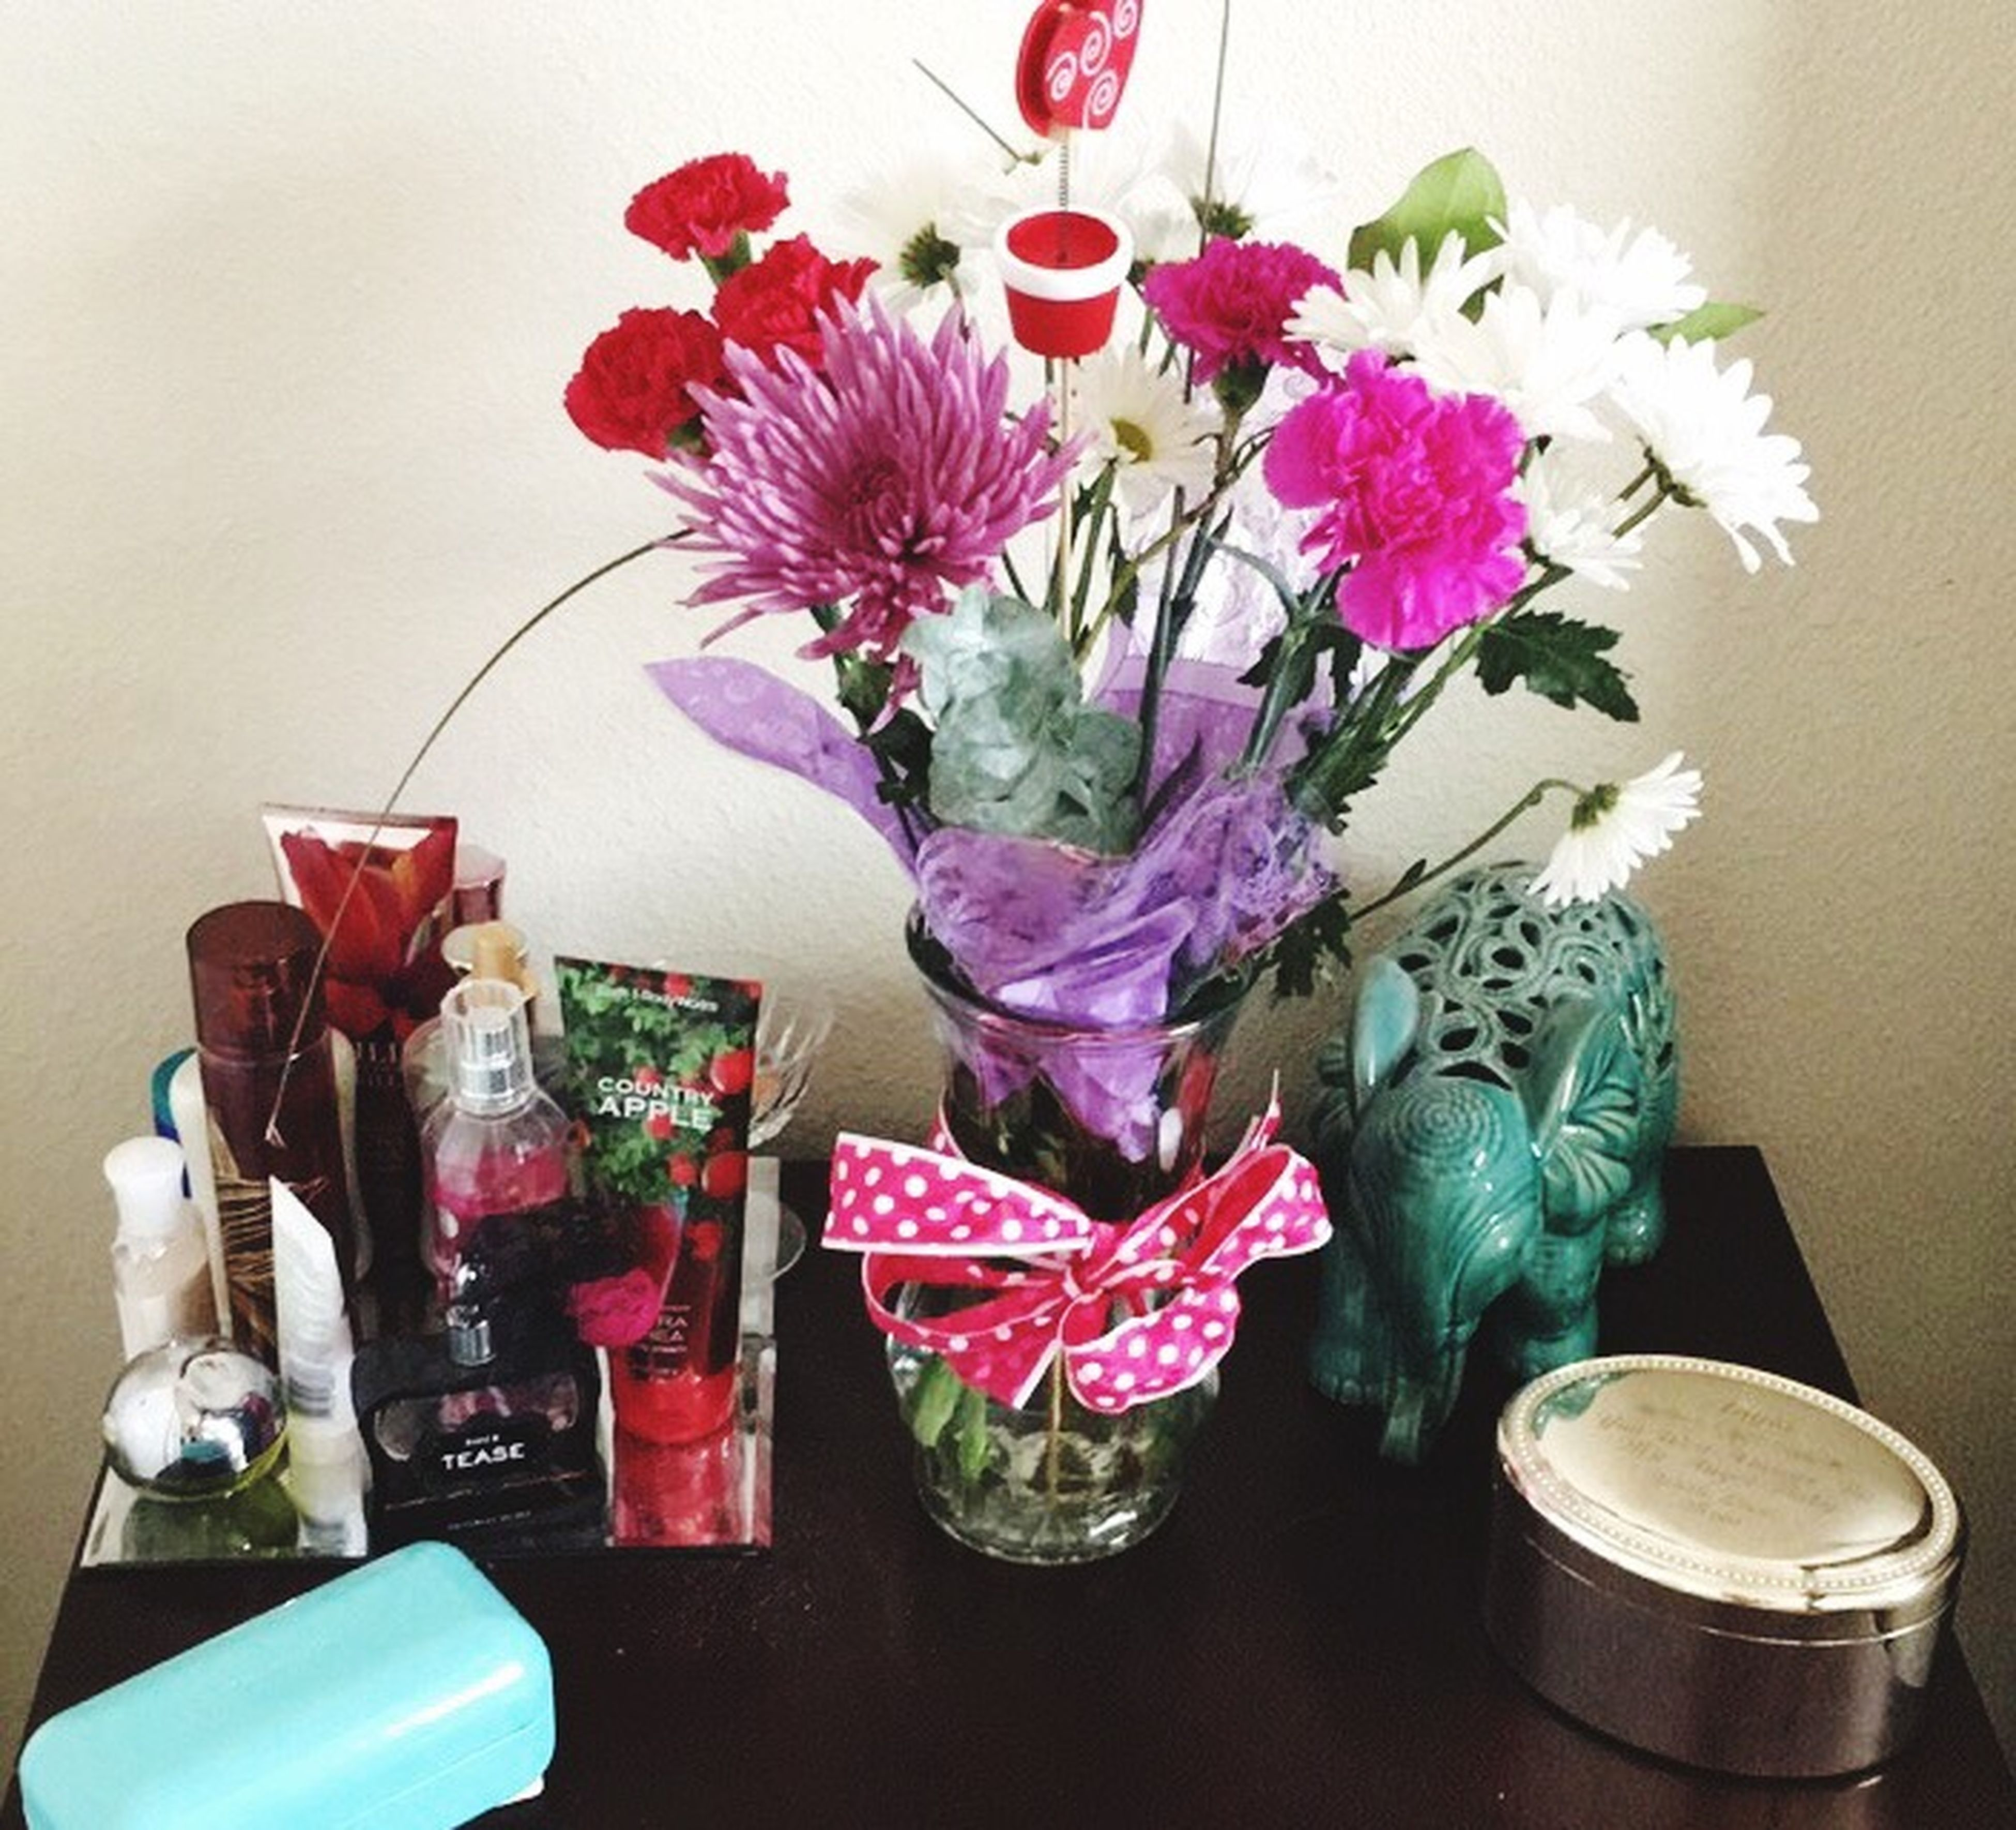 flower, indoors, vase, table, still life, freshness, flower arrangement, fragility, decoration, petal, home interior, glass - material, bouquet, bunch of flowers, flower head, close-up, wall - building feature, pink color, no people, bottle